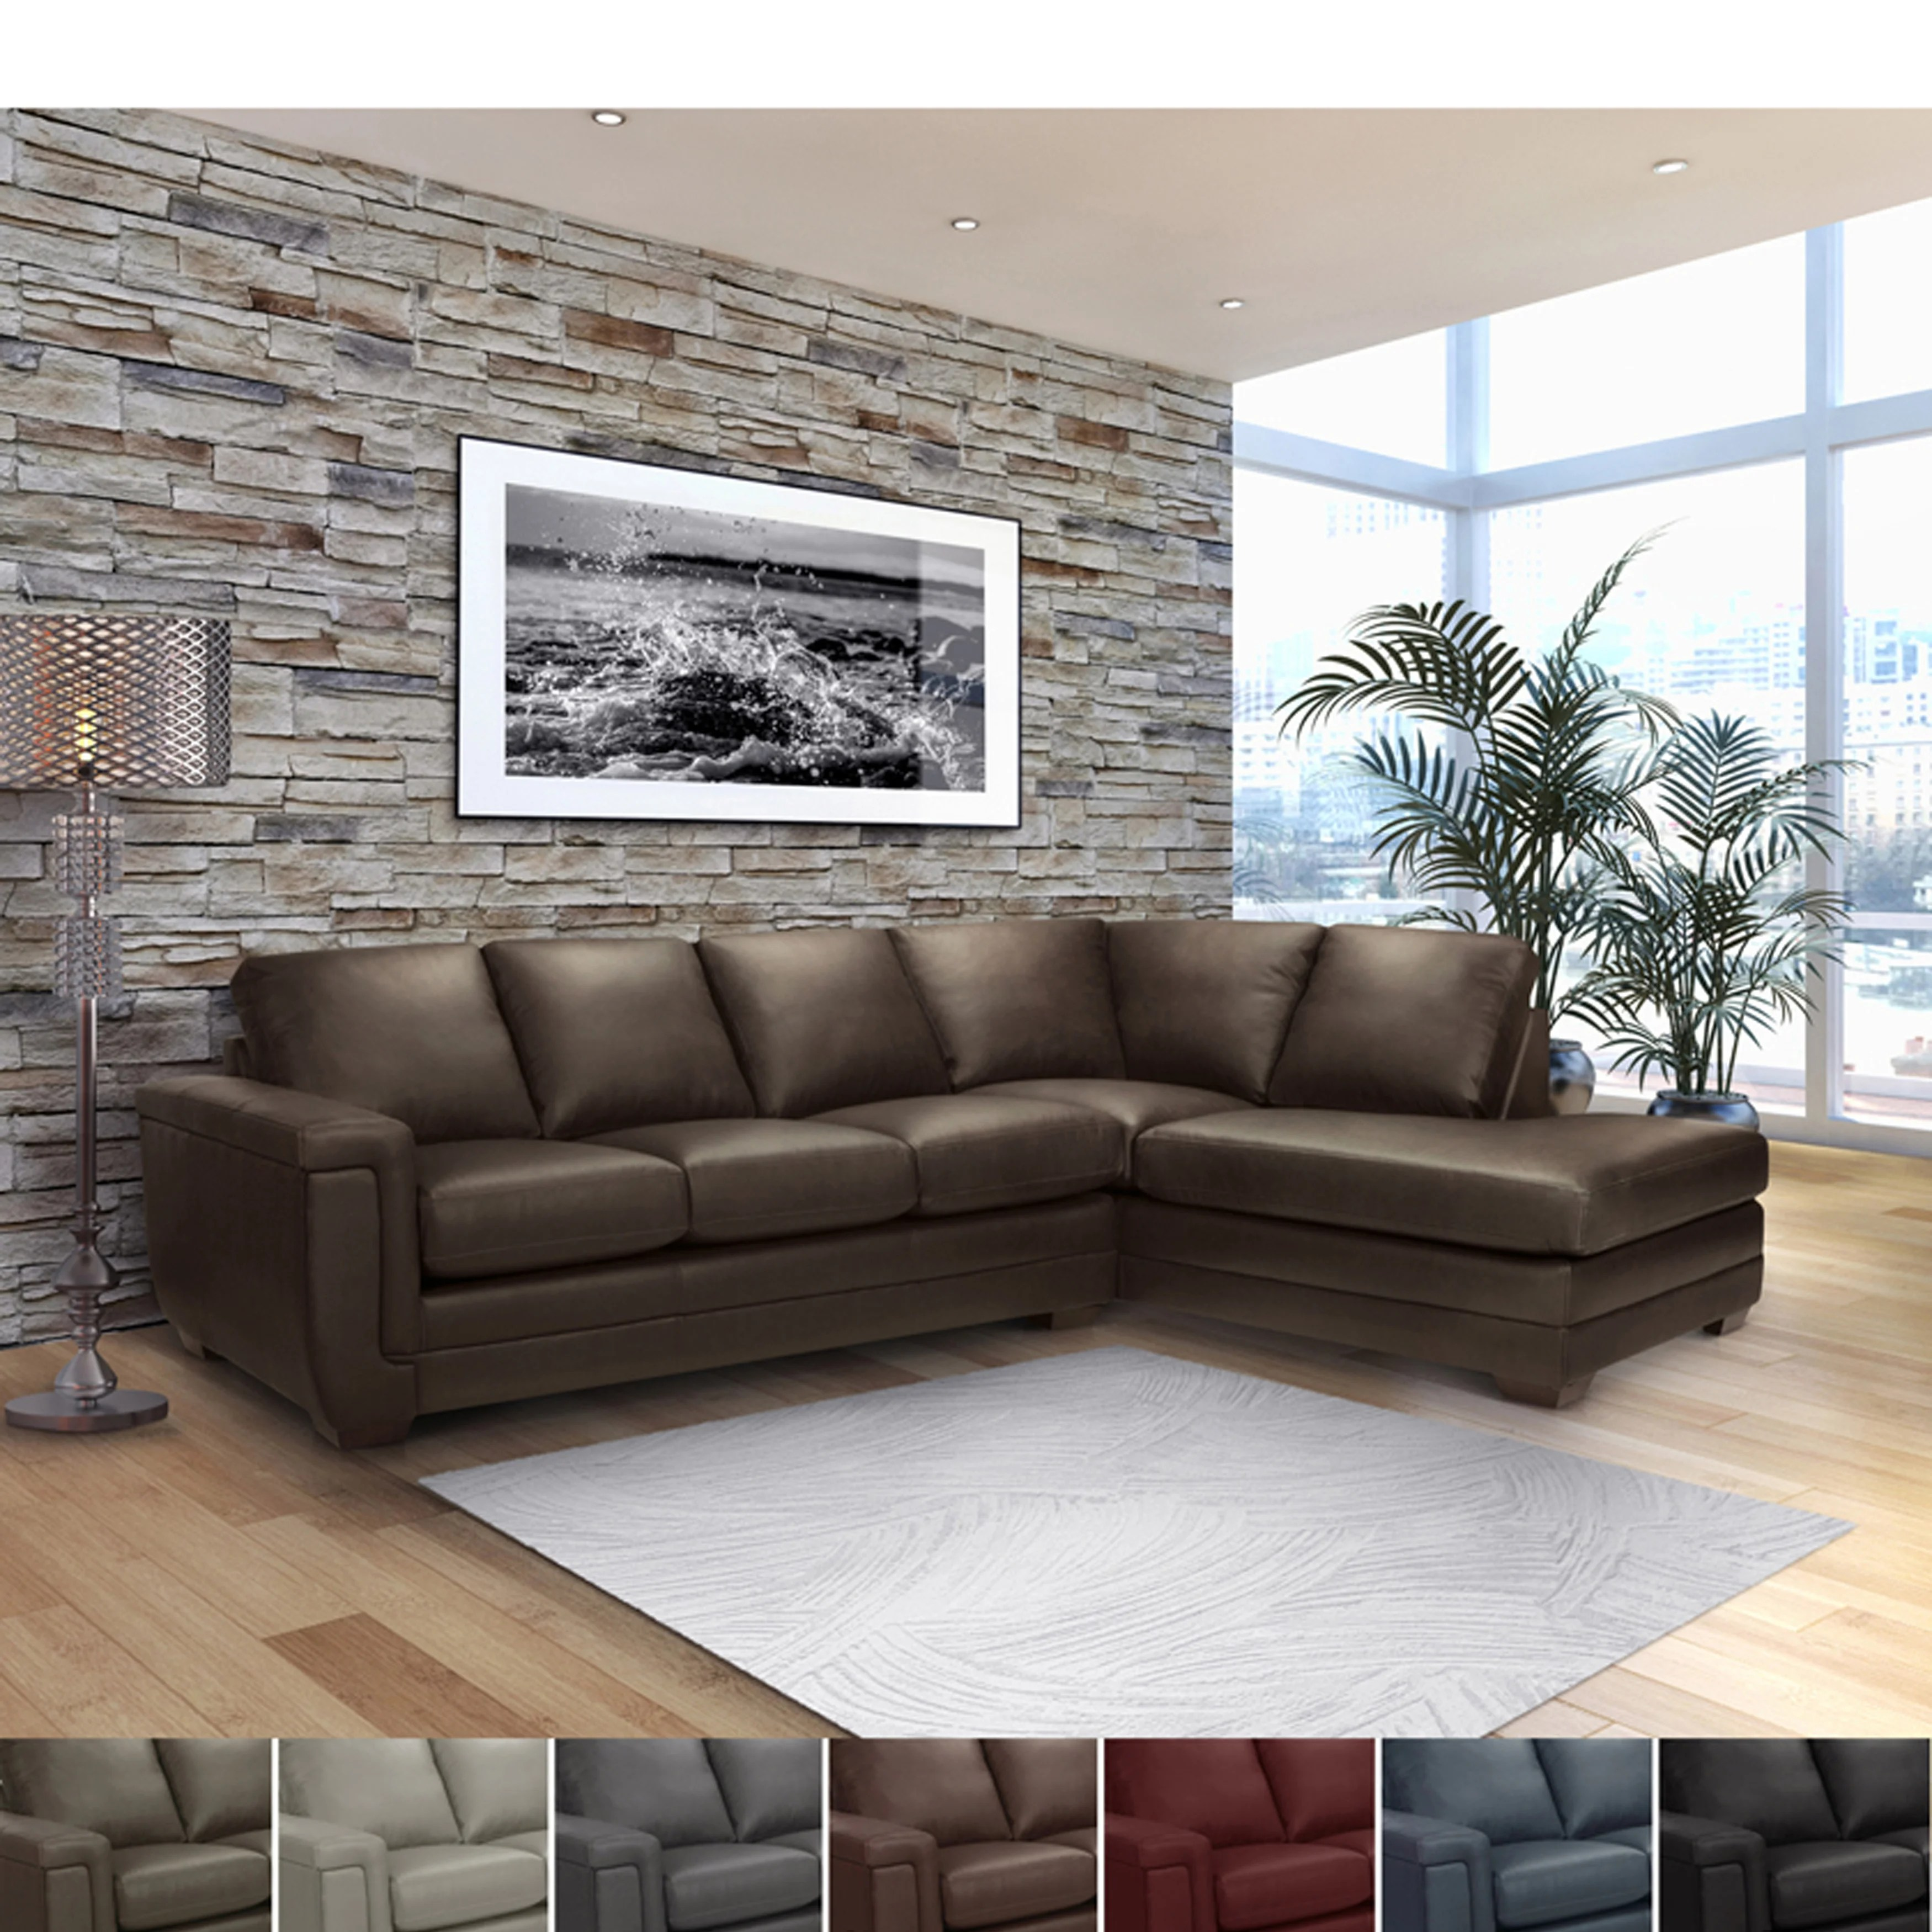 Yellow Sofa Online India Buy Leather Sectional Sofas Online At Overstock Our Best Living